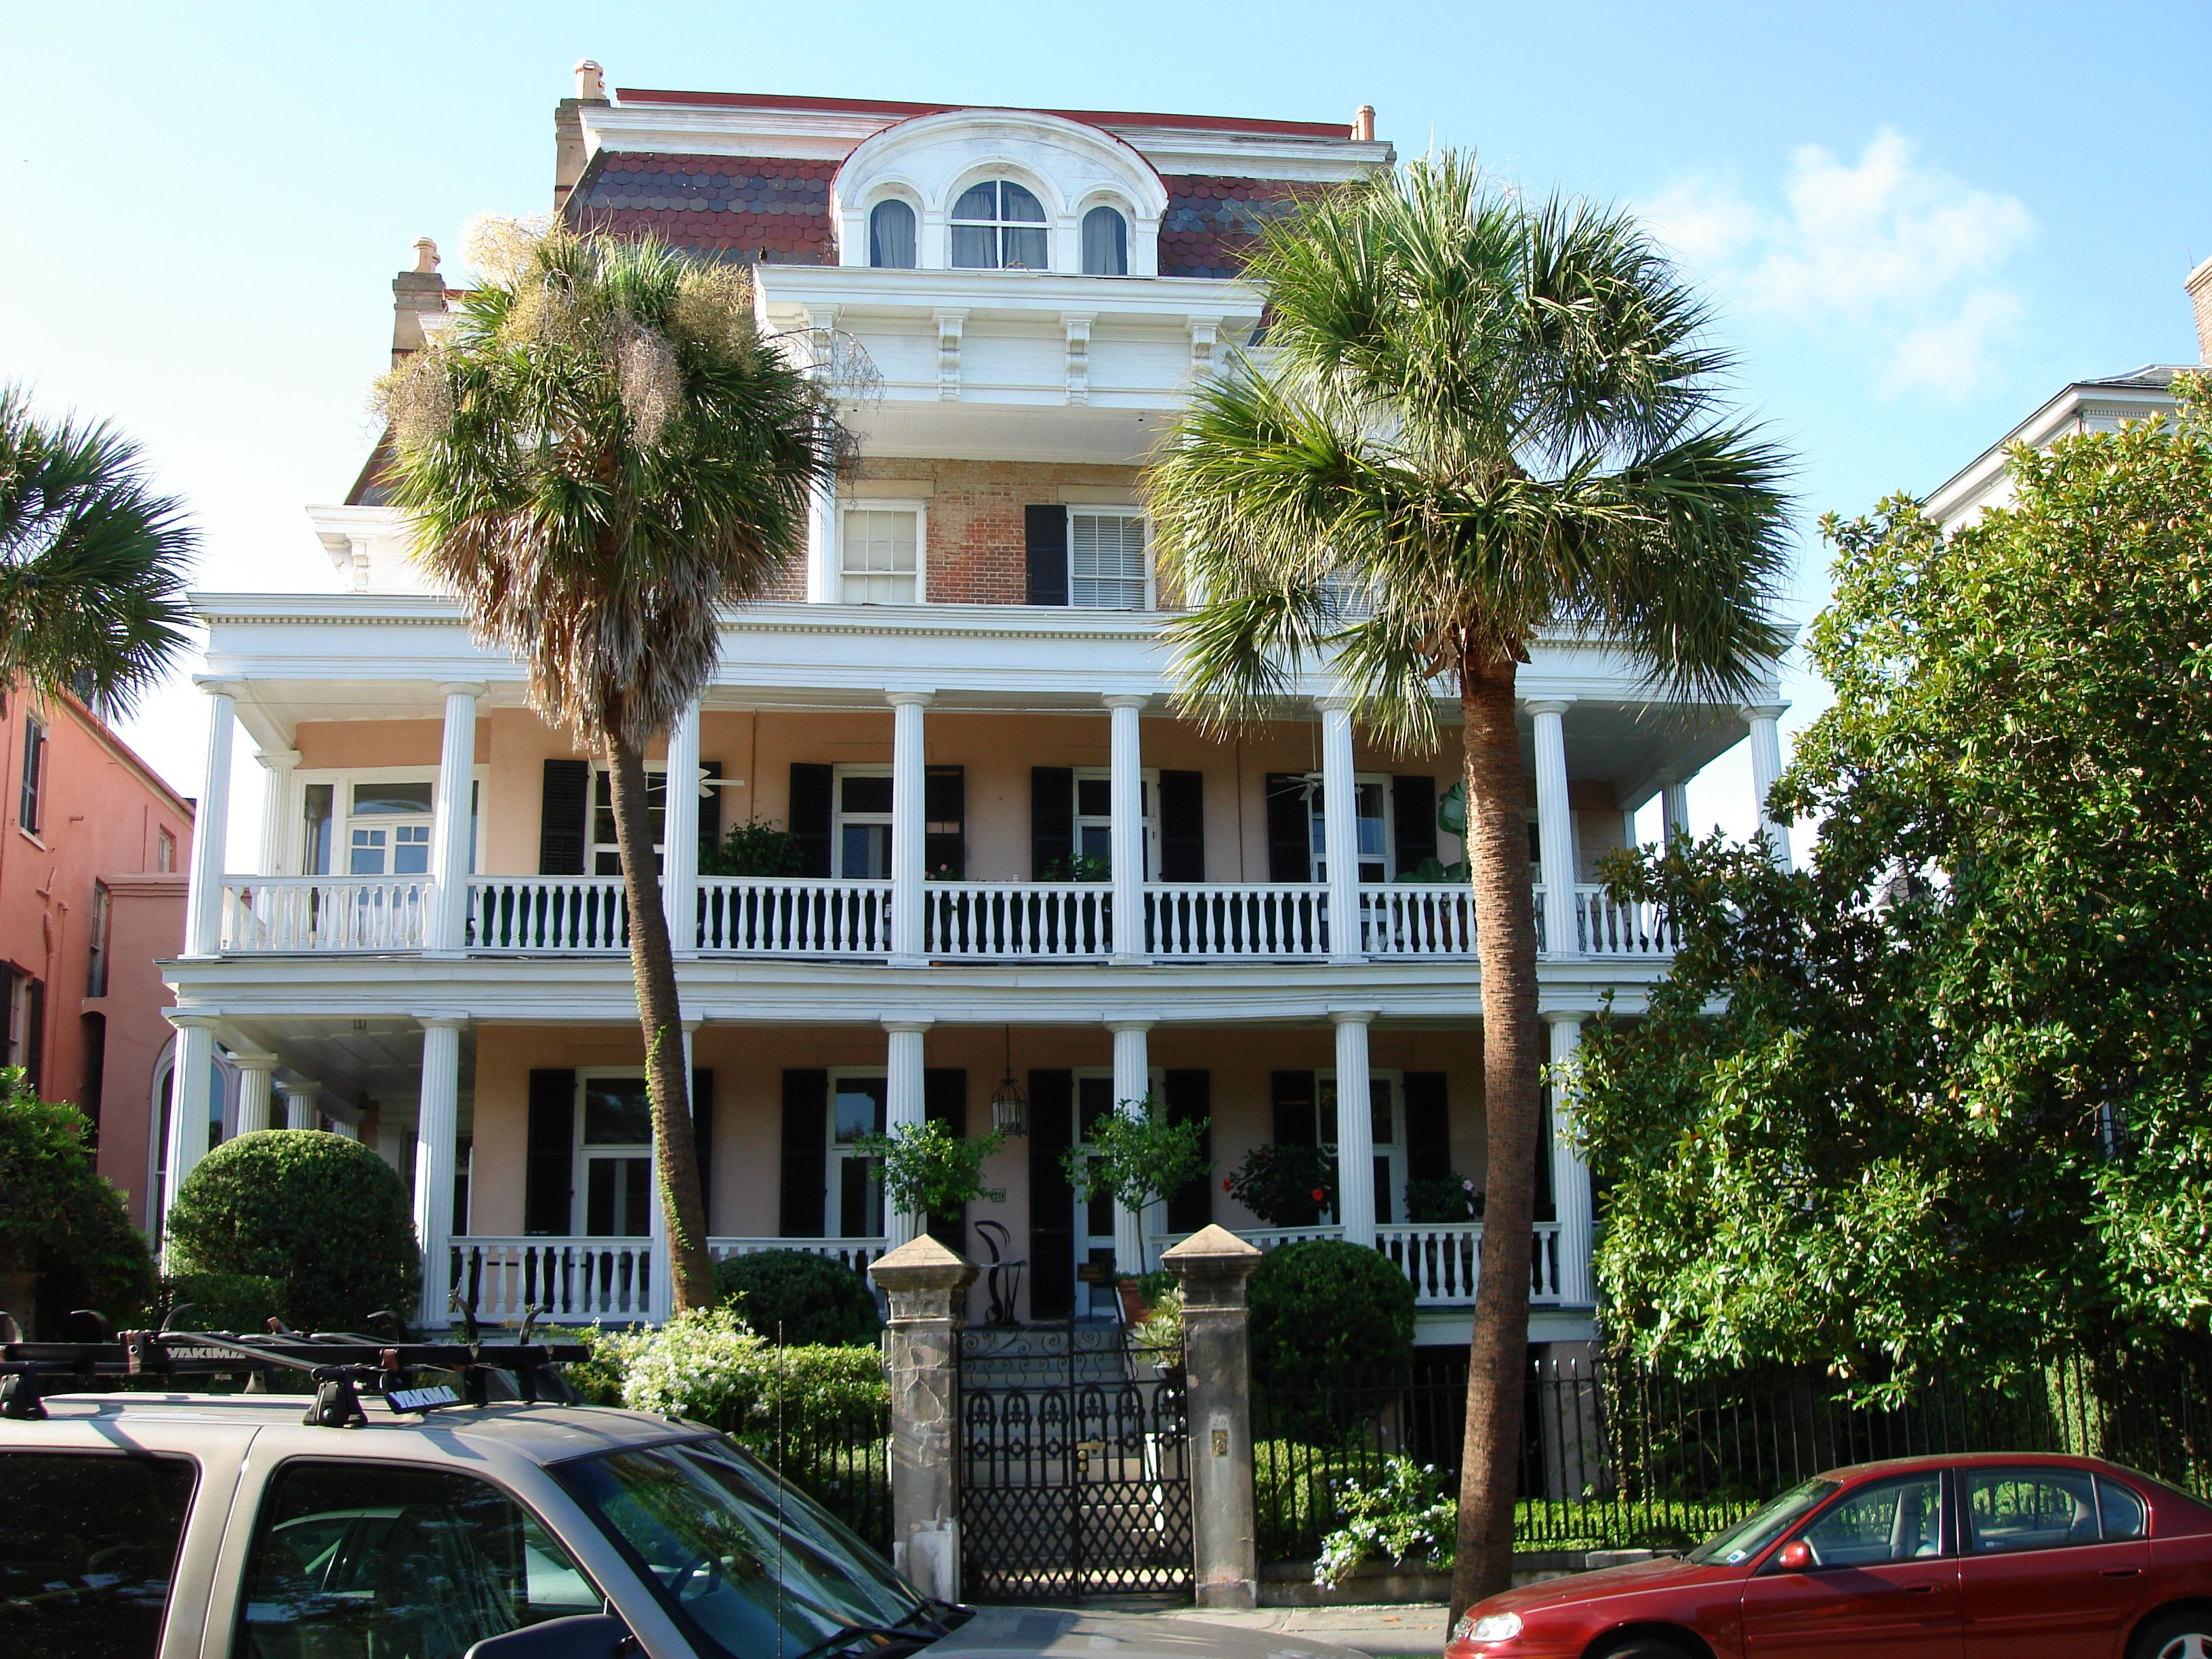 Battery Carriage House Inn Carriage House Inn South Carolina Charleston